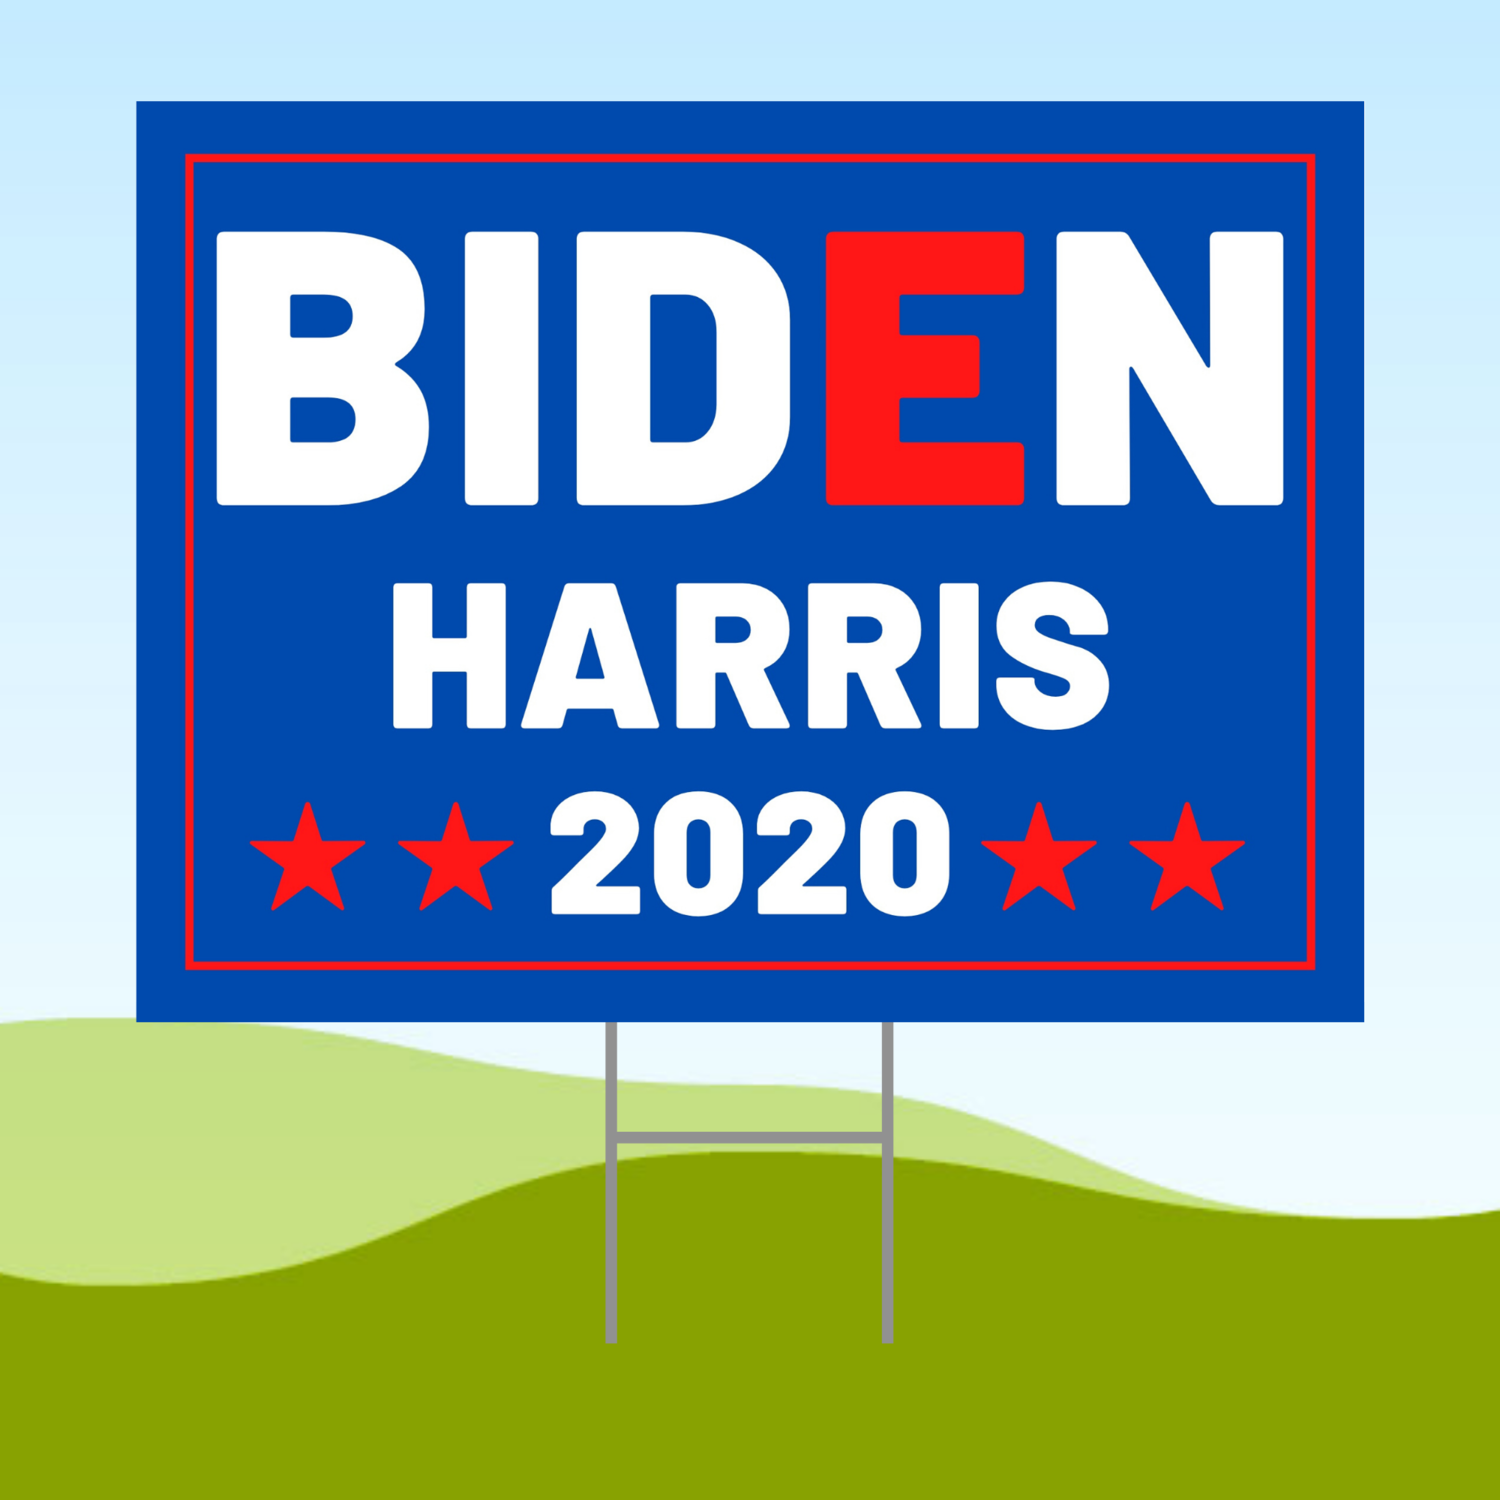 Joe Biden Kamala Harris 2020 18x24 Yard Sign WITH STAKE Corrugated Plastic Bandit Light Blue